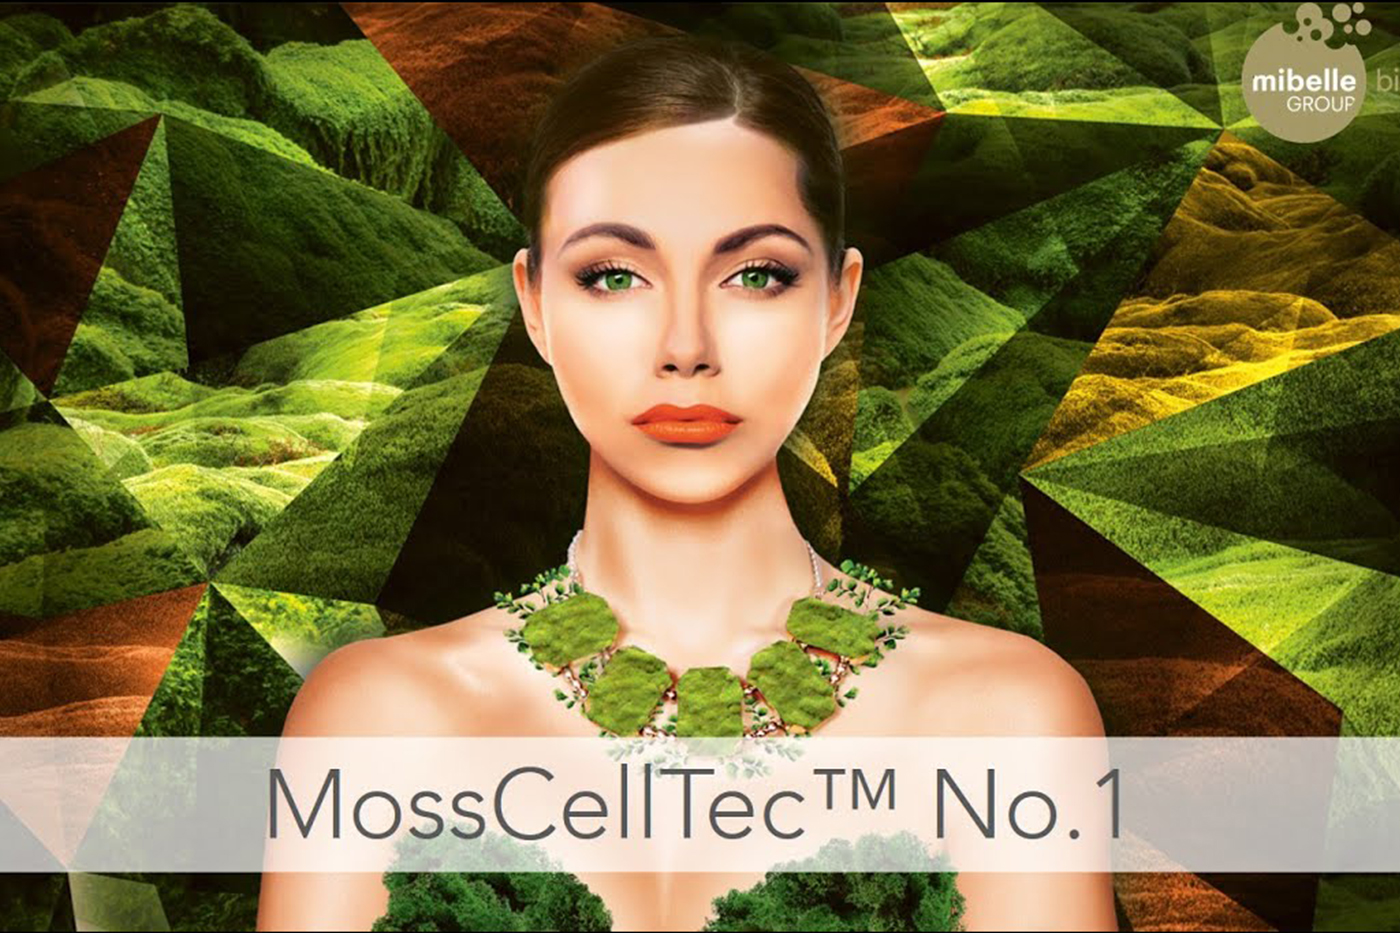 Mibelle experiments with new moss-based technology for skin moisture